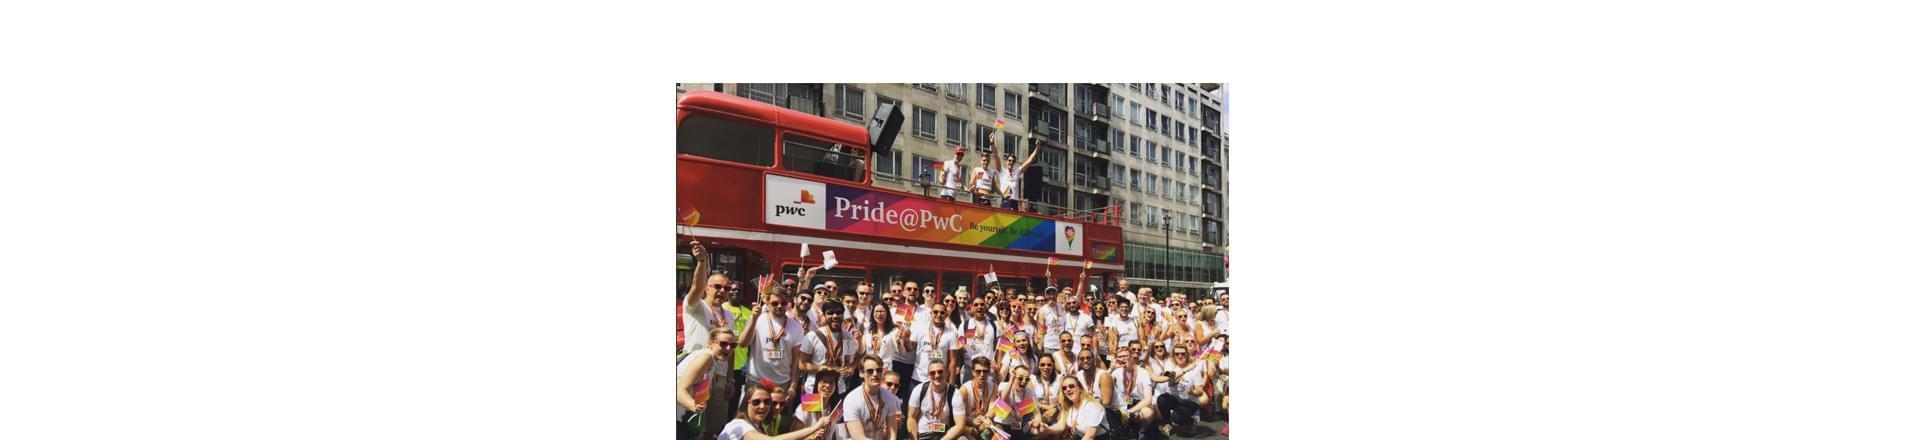 a group of PwC employees standing in front of a red open-top London bus with the Pride @ PwC rainbow branding.